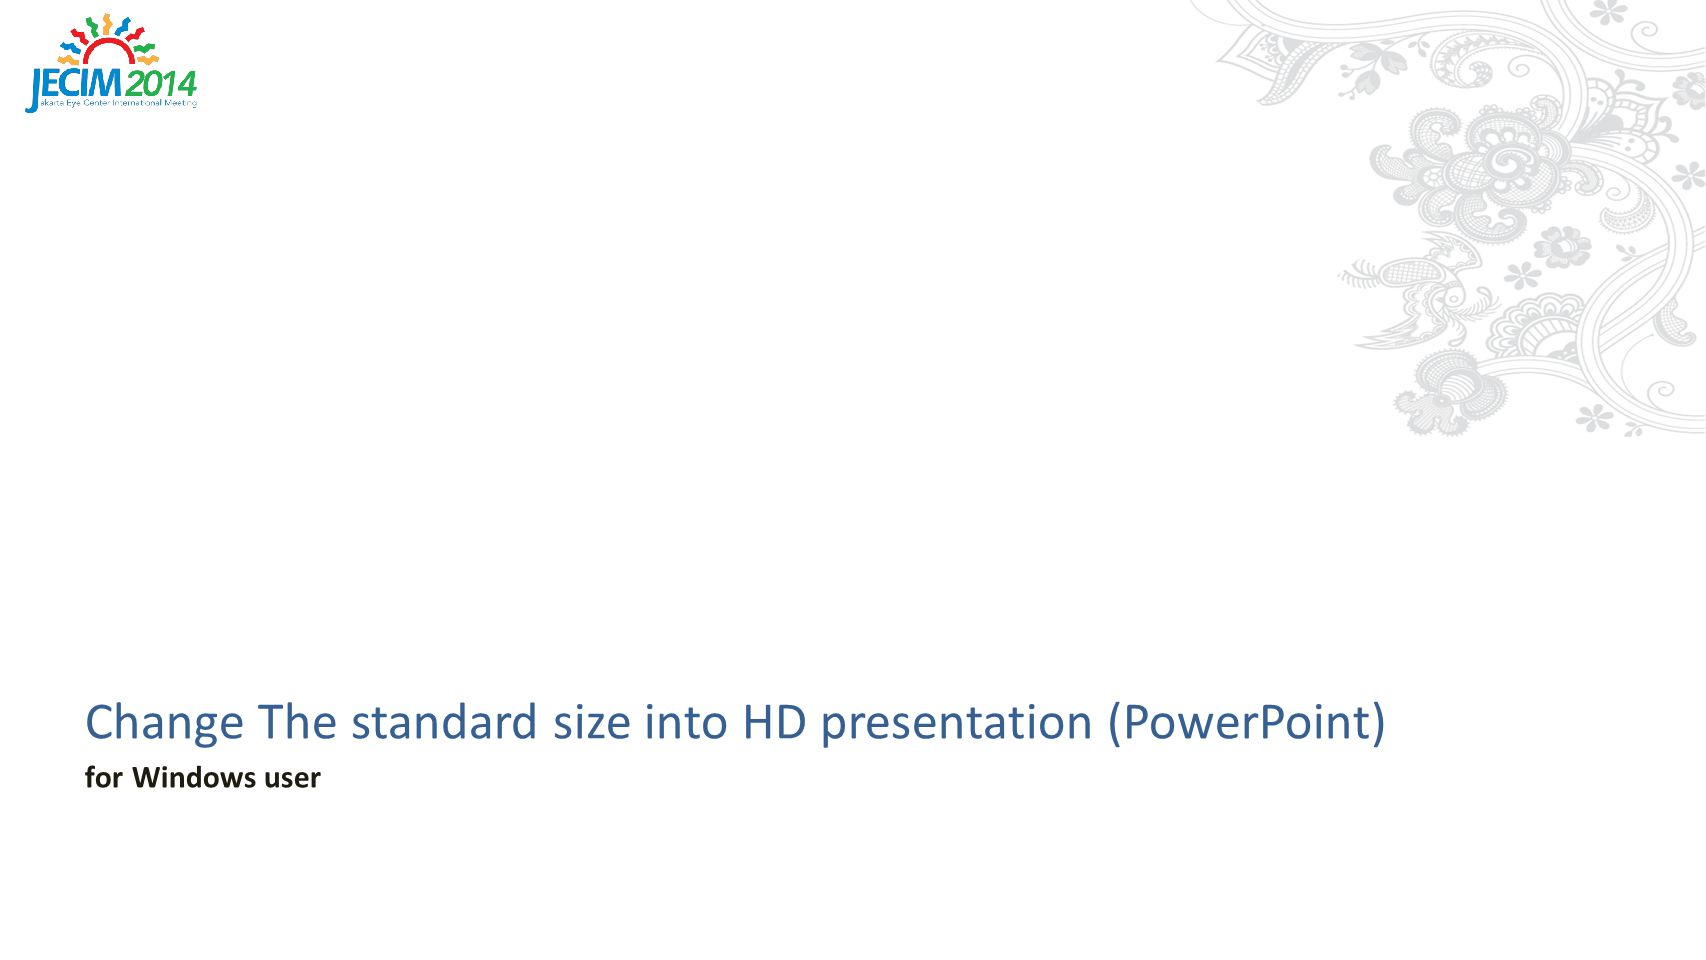 Change The standard size into HD presentation (PowerPoint) for Windows user